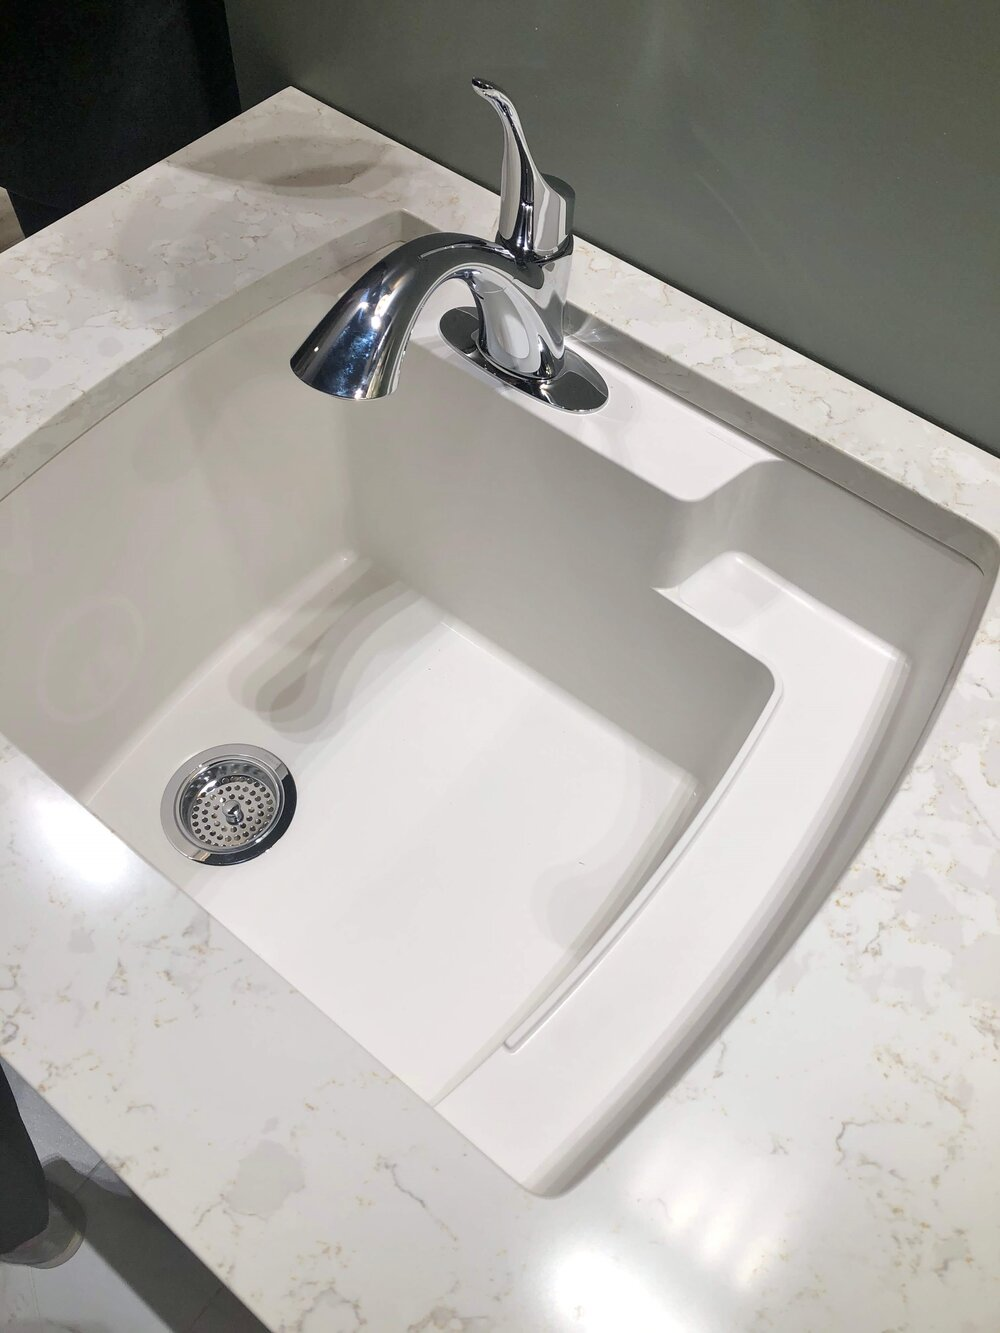 Kohler extra deep utility sink, perfect for just about anything, even pets.